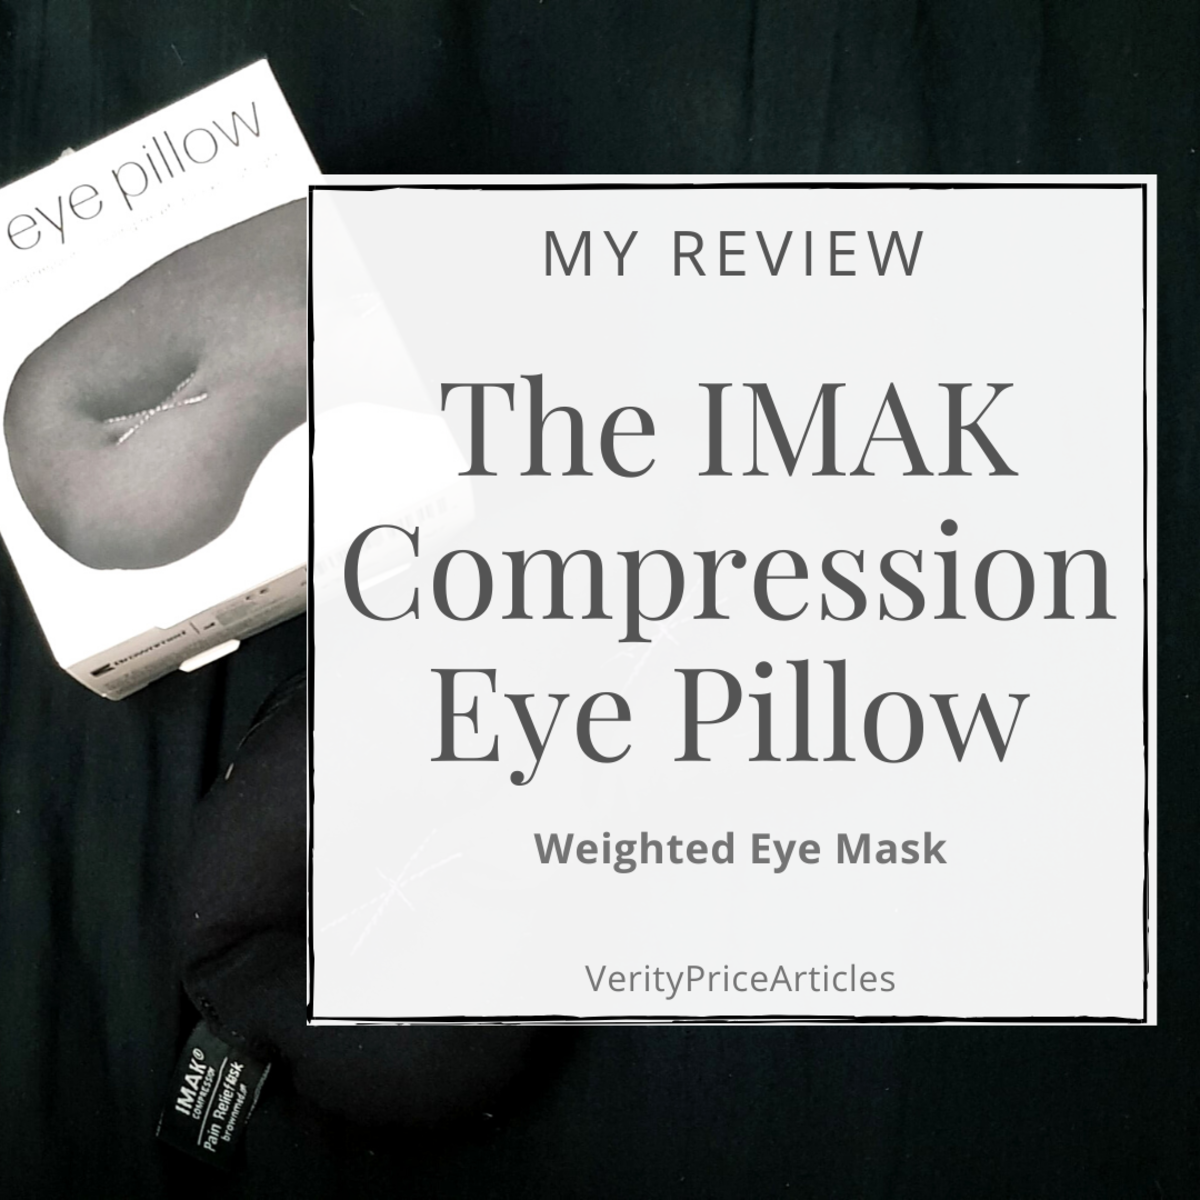 My Review of the IMAK Compression Eye Pillow (Weighted Eye Mask)